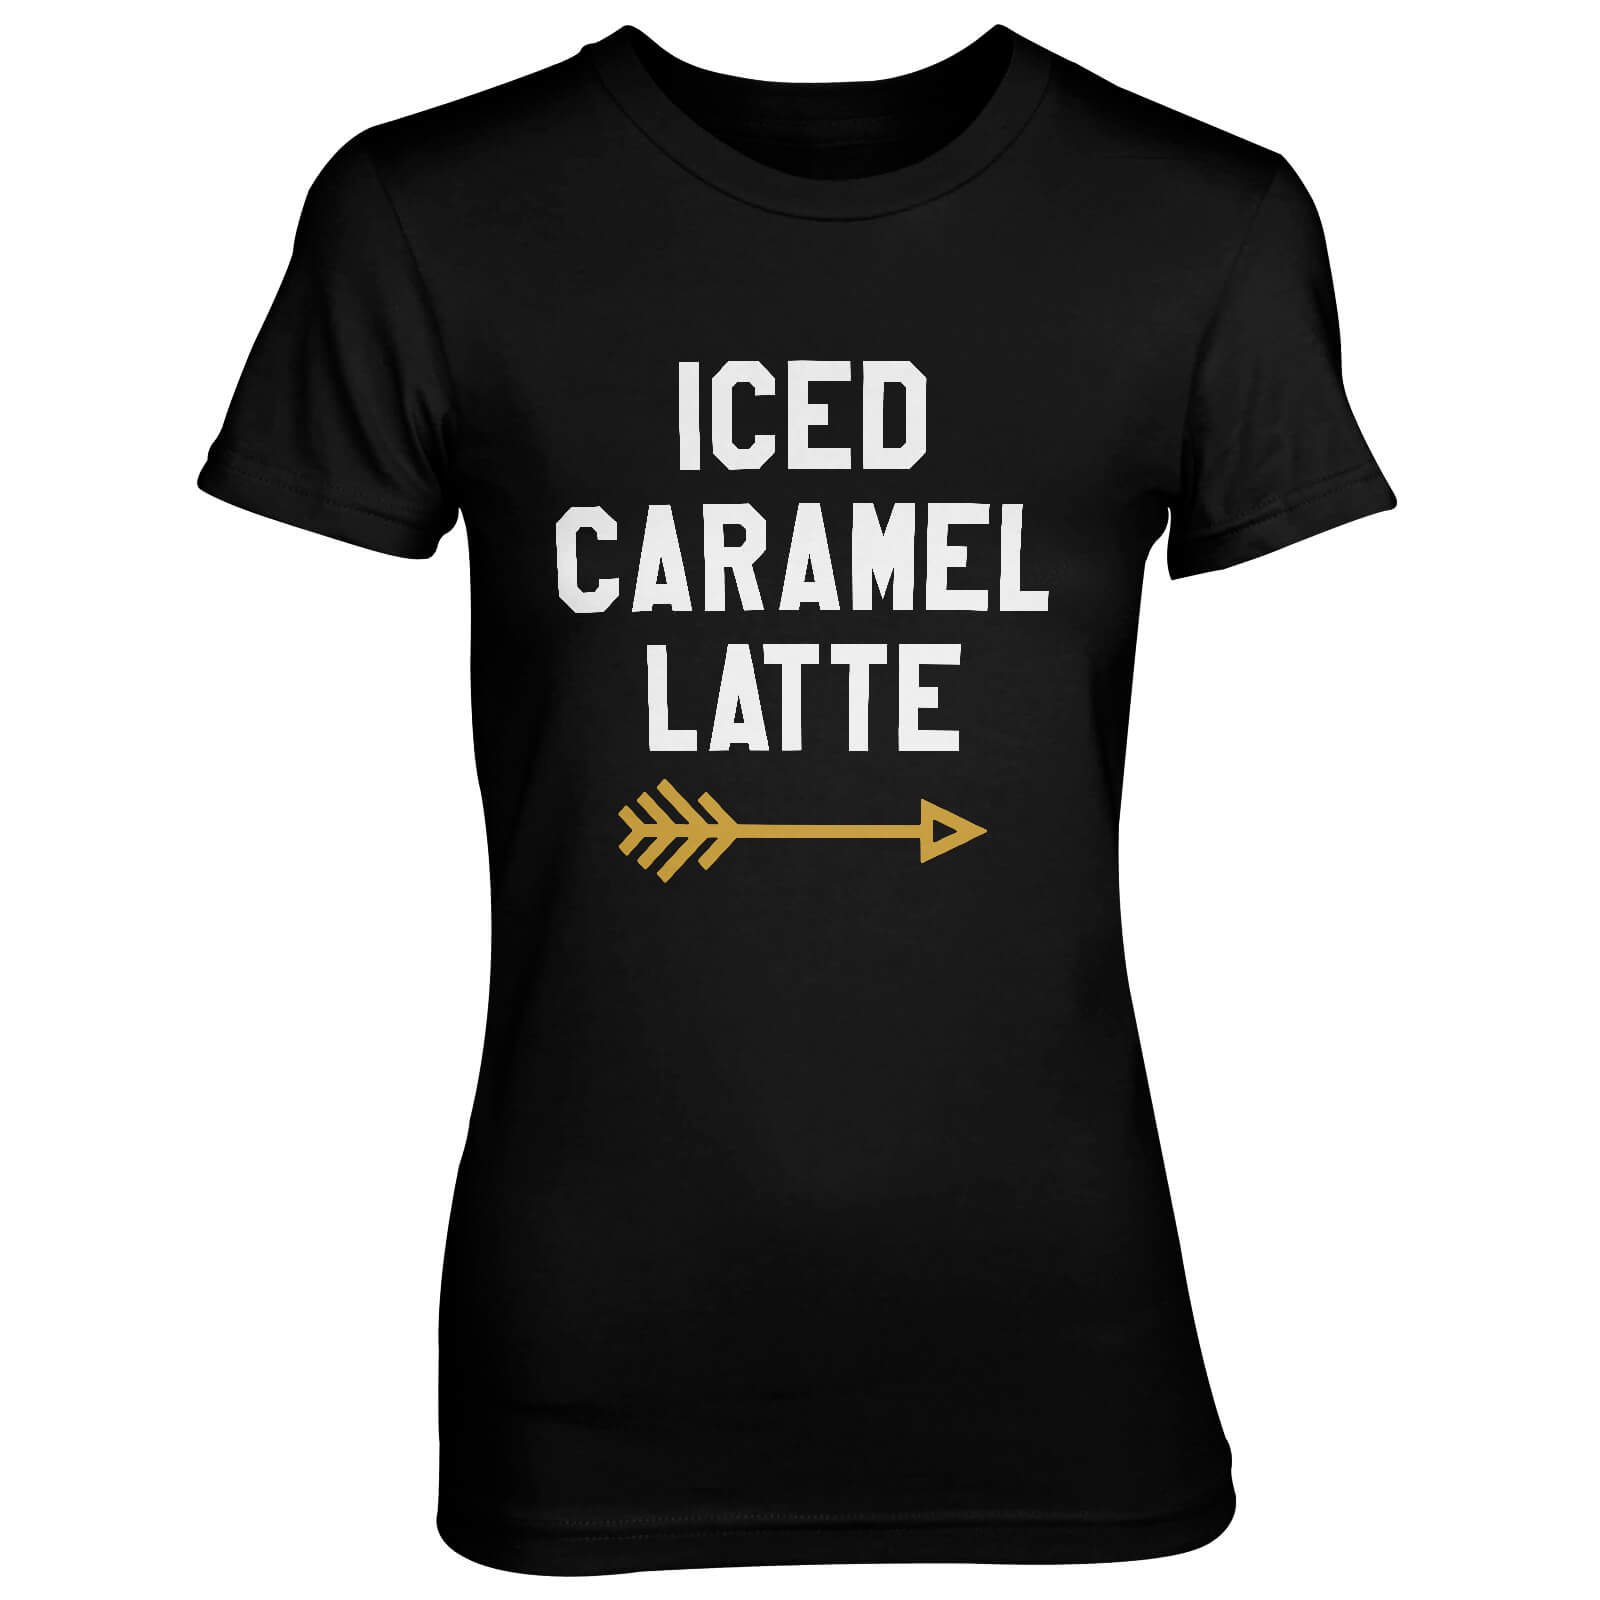 Iced Caramel Latte Women